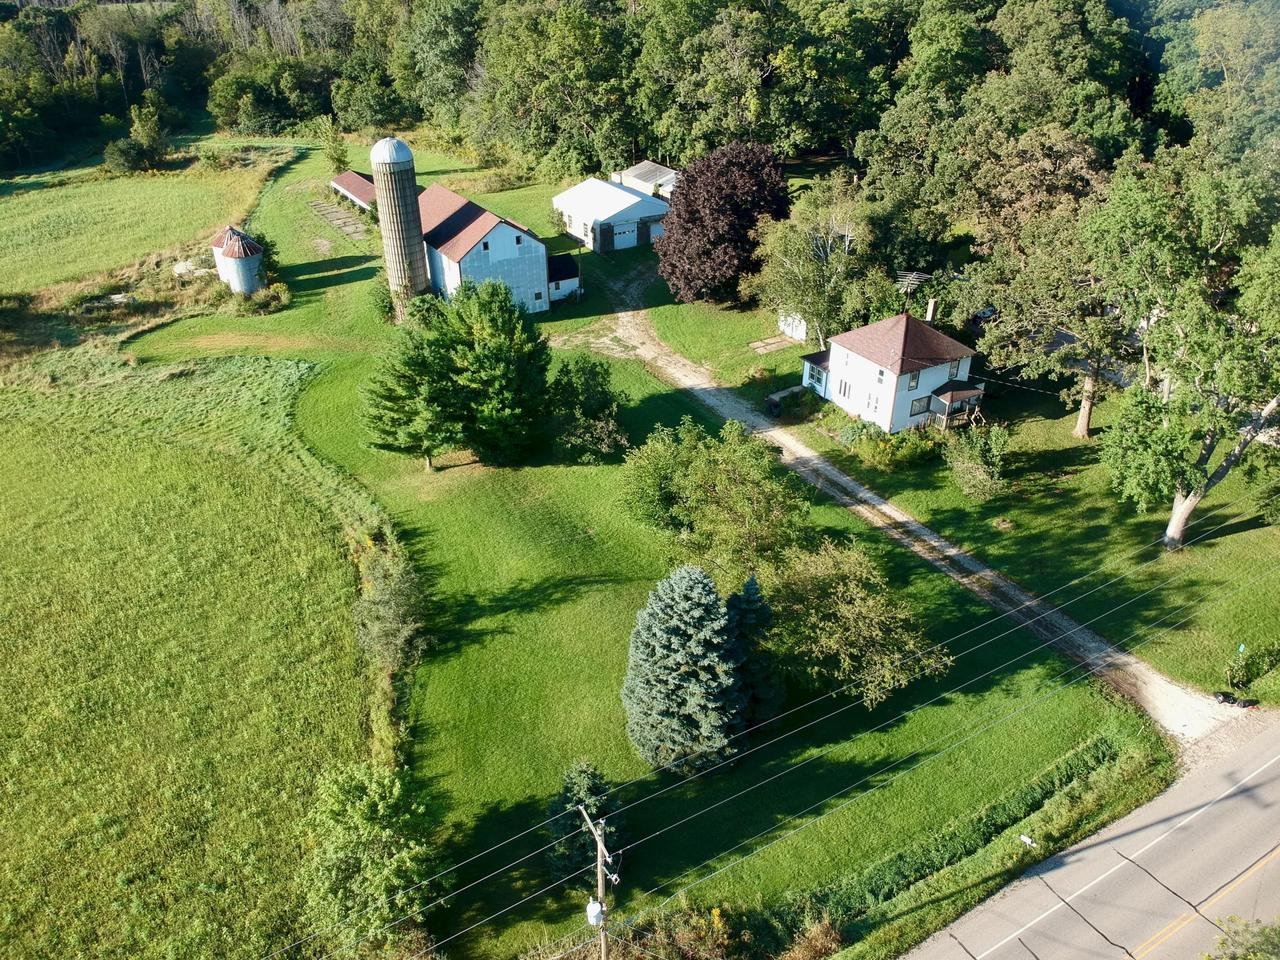 Classic American farmhouse w 3 bdrms, 1 full bath, large living room, dining room, kitchen and sunroom on 5 acres. Dwelling has gas forced air heat, central air, 220V elect & a detached 2 car garage.The property has a 52'x31' barn, & a 40' x 36' garage/workshop w/water & 220V, great for a builder or hobbyist, w 2 doors, 9.5' and 7.5' tall & new roof & trusses in 2012. There are several other outbuildings including a 125' x 18' storage shed and another 20' x 10' building that was used as a granary.  Horses and other livestock are allowed (2 cows or horses, six sheep or goats).  Property would also lend itself to boarding dogs.  It is bounded on 2 sides by Bristol Woods County Park that has over 4.5 miles of trails.  Post & beam barn is a perfect candidate for a barn to residence conversion!